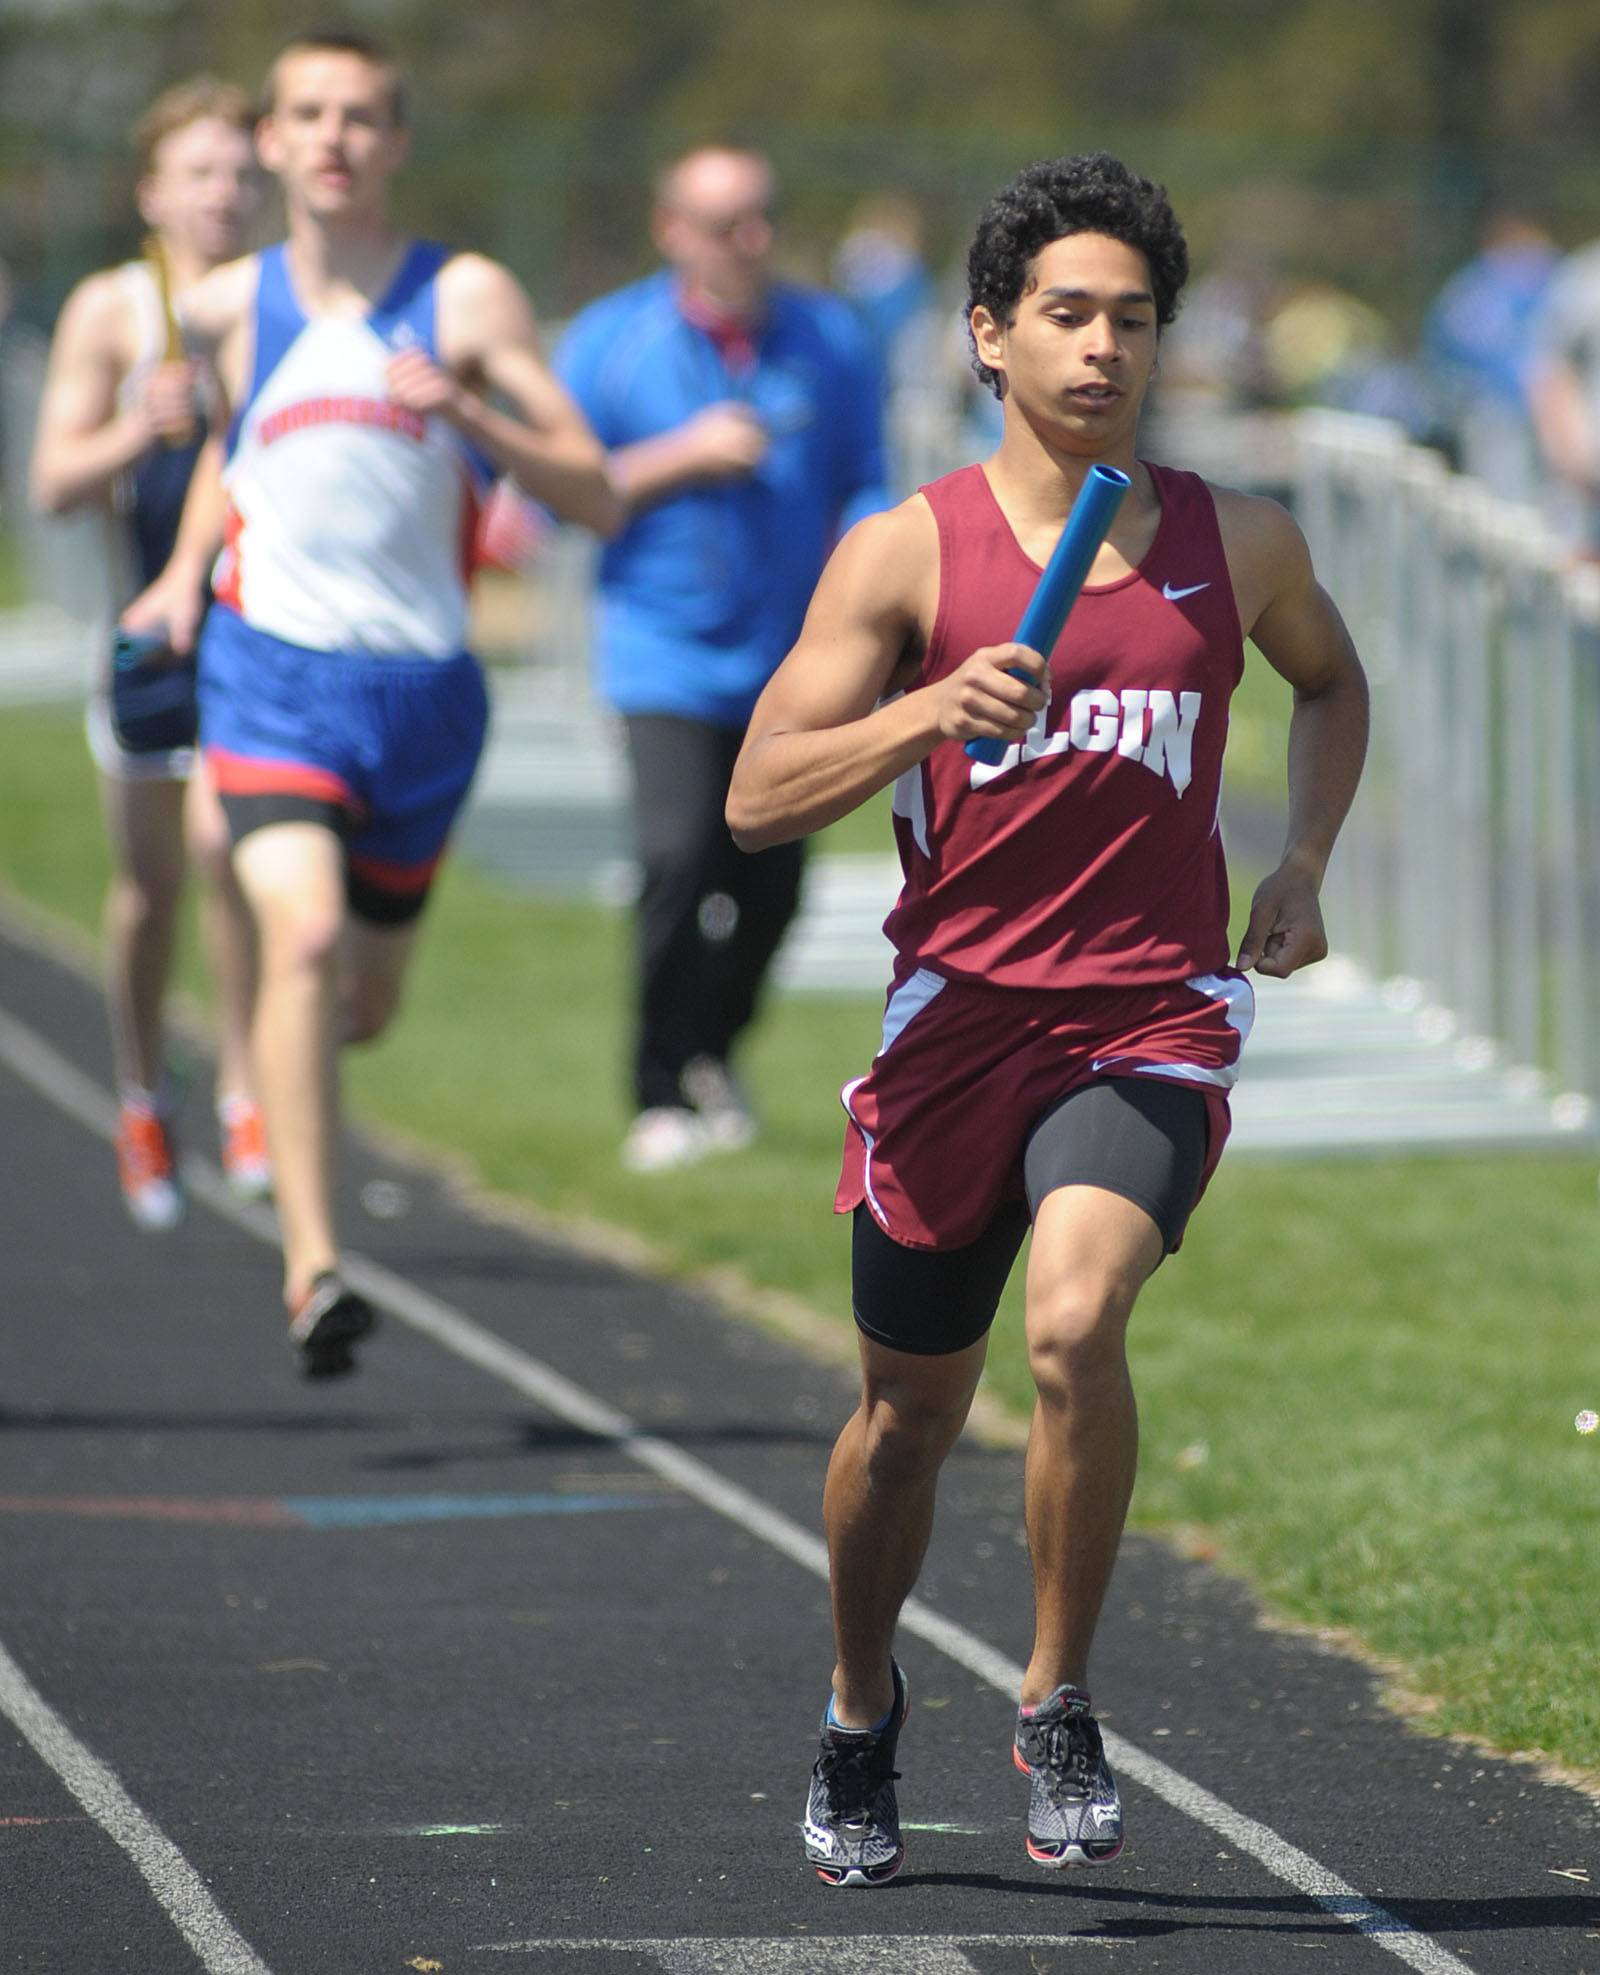 Elgin's Emilio Mancha in the 4 x 800 meter relay at Kaneland's Peterson Prep Invitational on Saturday, April 26.